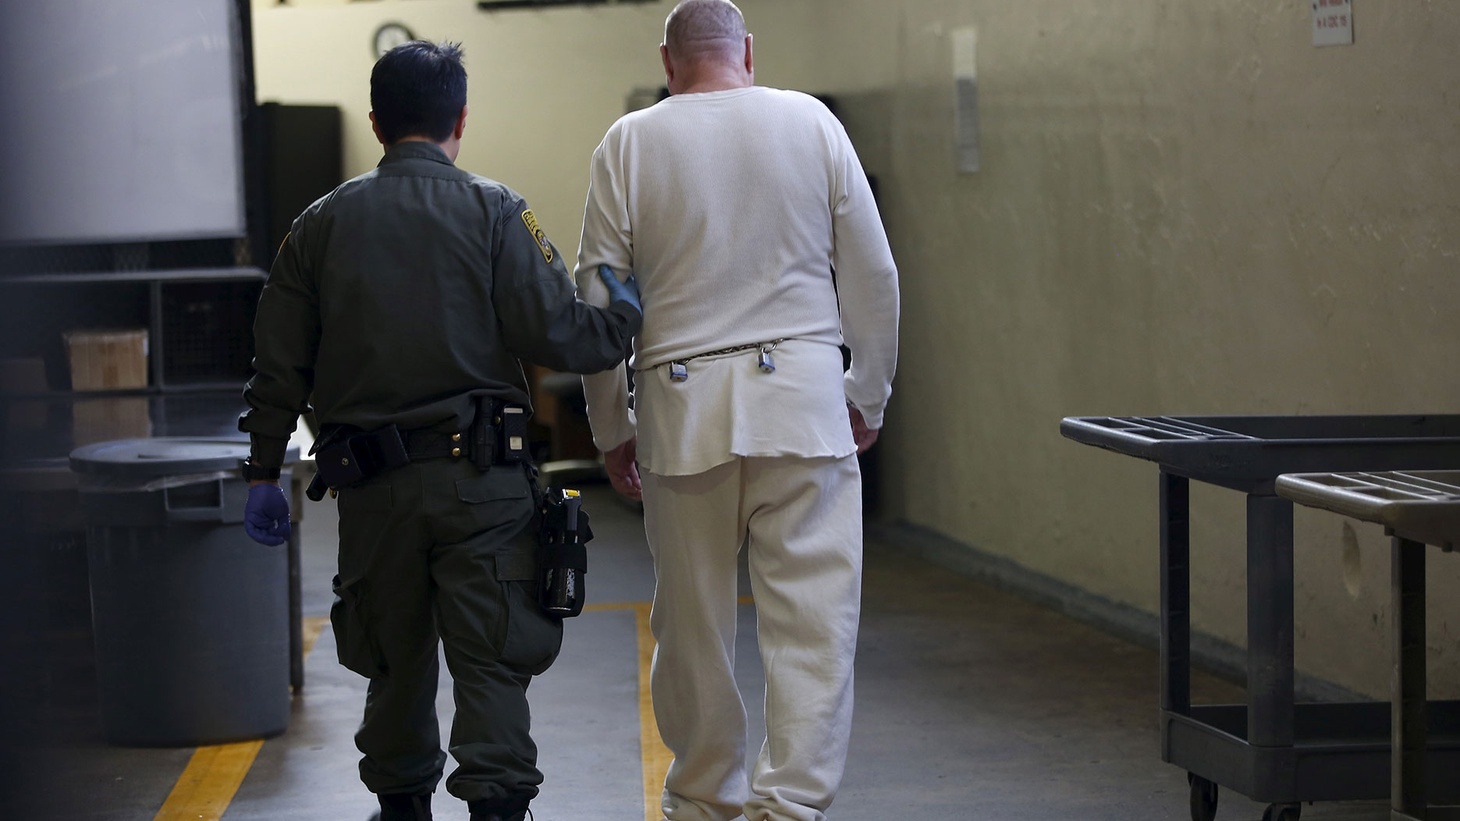 A guard escorts a condemned inmate down a corridor in the East Block  during a media tour of California's Death Row at San Quentin State Prison  in San Quentin, California December 29, 2015 Photo: Stephen Lam/Reuters    Nebraska  and  Oklahoma  are voting on measures that would institutionalize capital punishment. In  California , there's a…